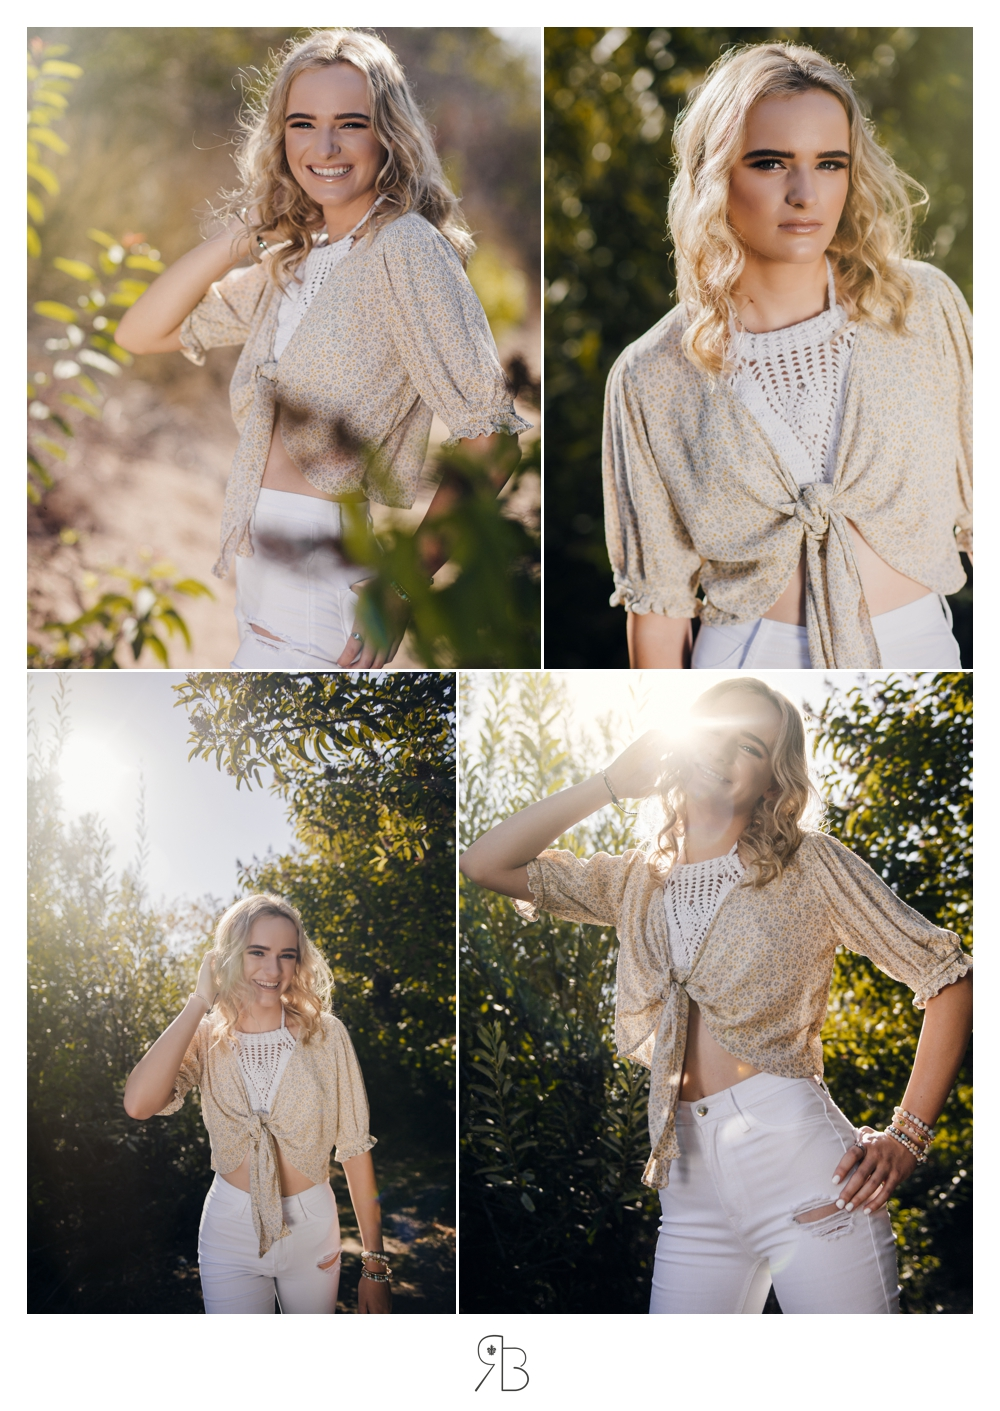 Girl in natural setting backlit wearing tan sweater and white bell bottoms Renee Bowen Senior Photography